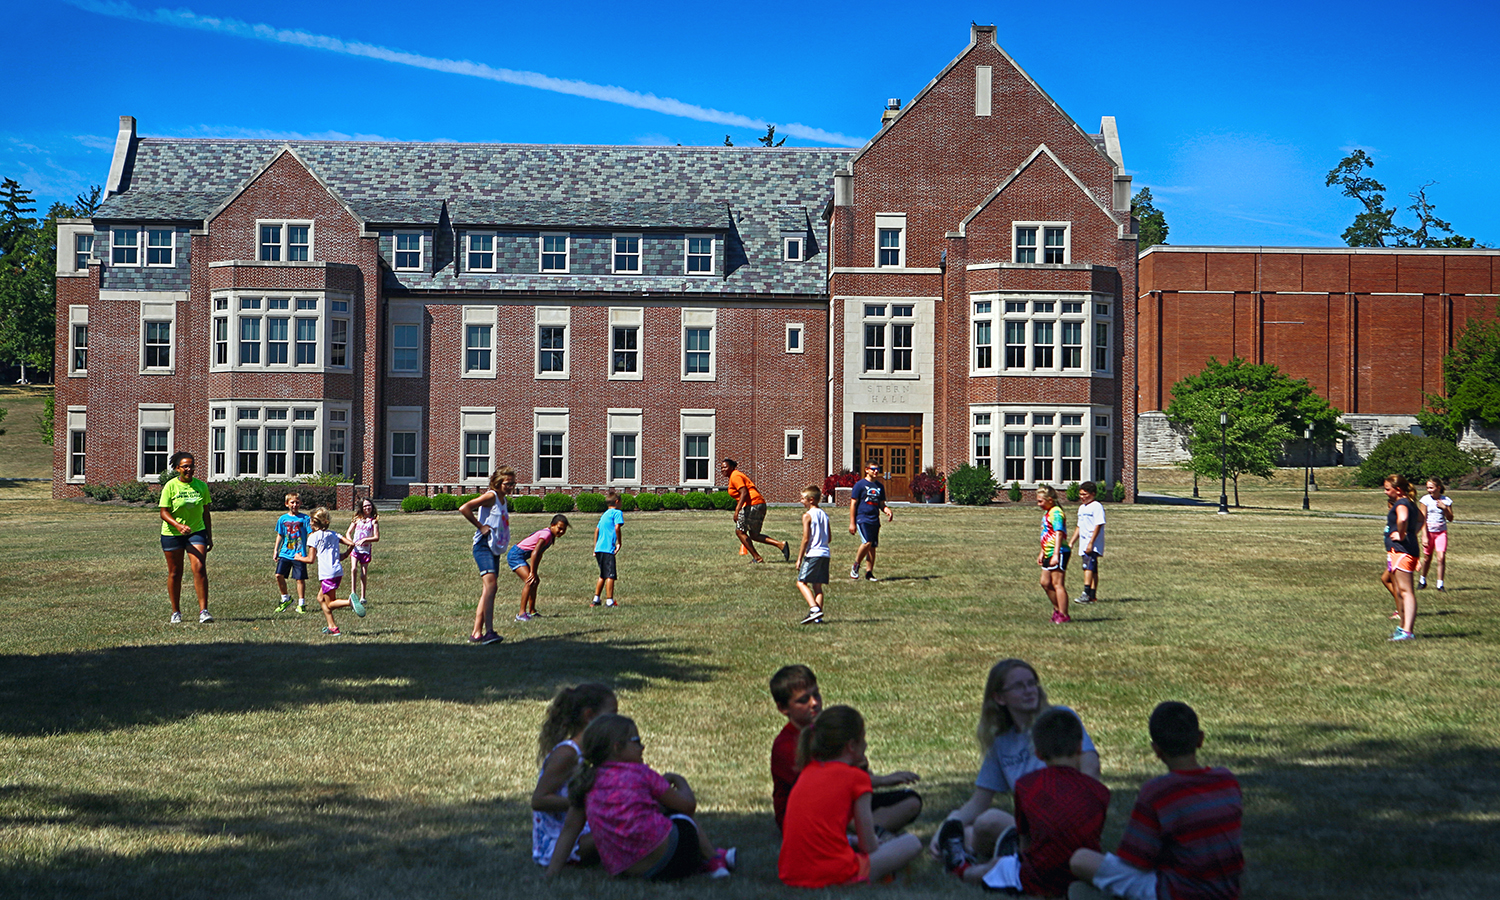 Participants in HWS's summer camp utilize the Quad, with Stern Hall on the western border. Stern Hall was named for principal donor Herbert J. Stern '58, LL.D. '74, P '03, and houses the departments of economics, political science, anthropology & sociology, environmental studies, and Asian languages and cultures